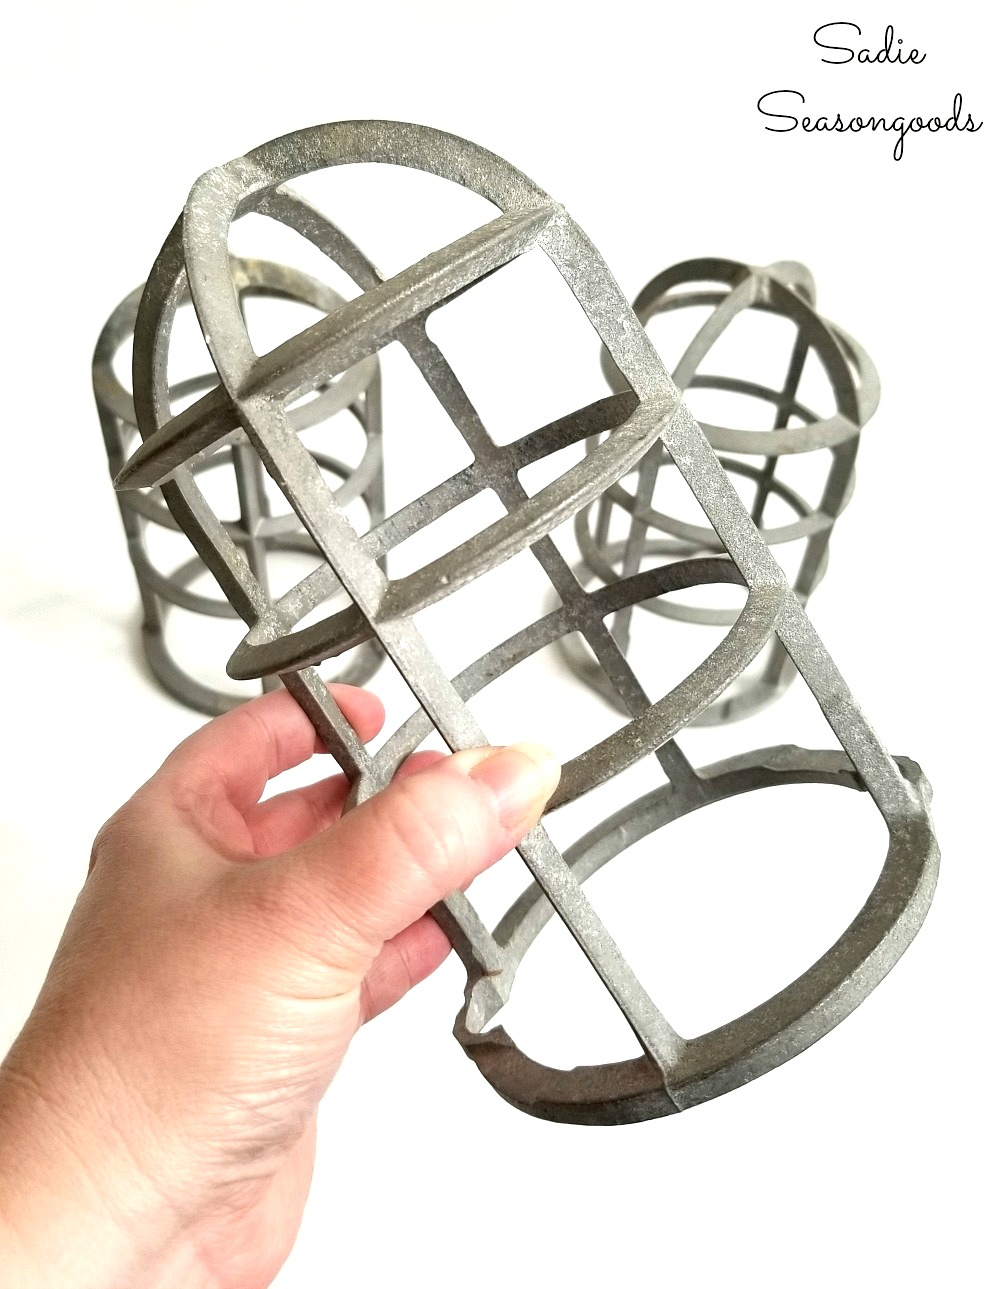 Light cage or light bulb cage to be upcycled and repurposed into a Christmas lantern